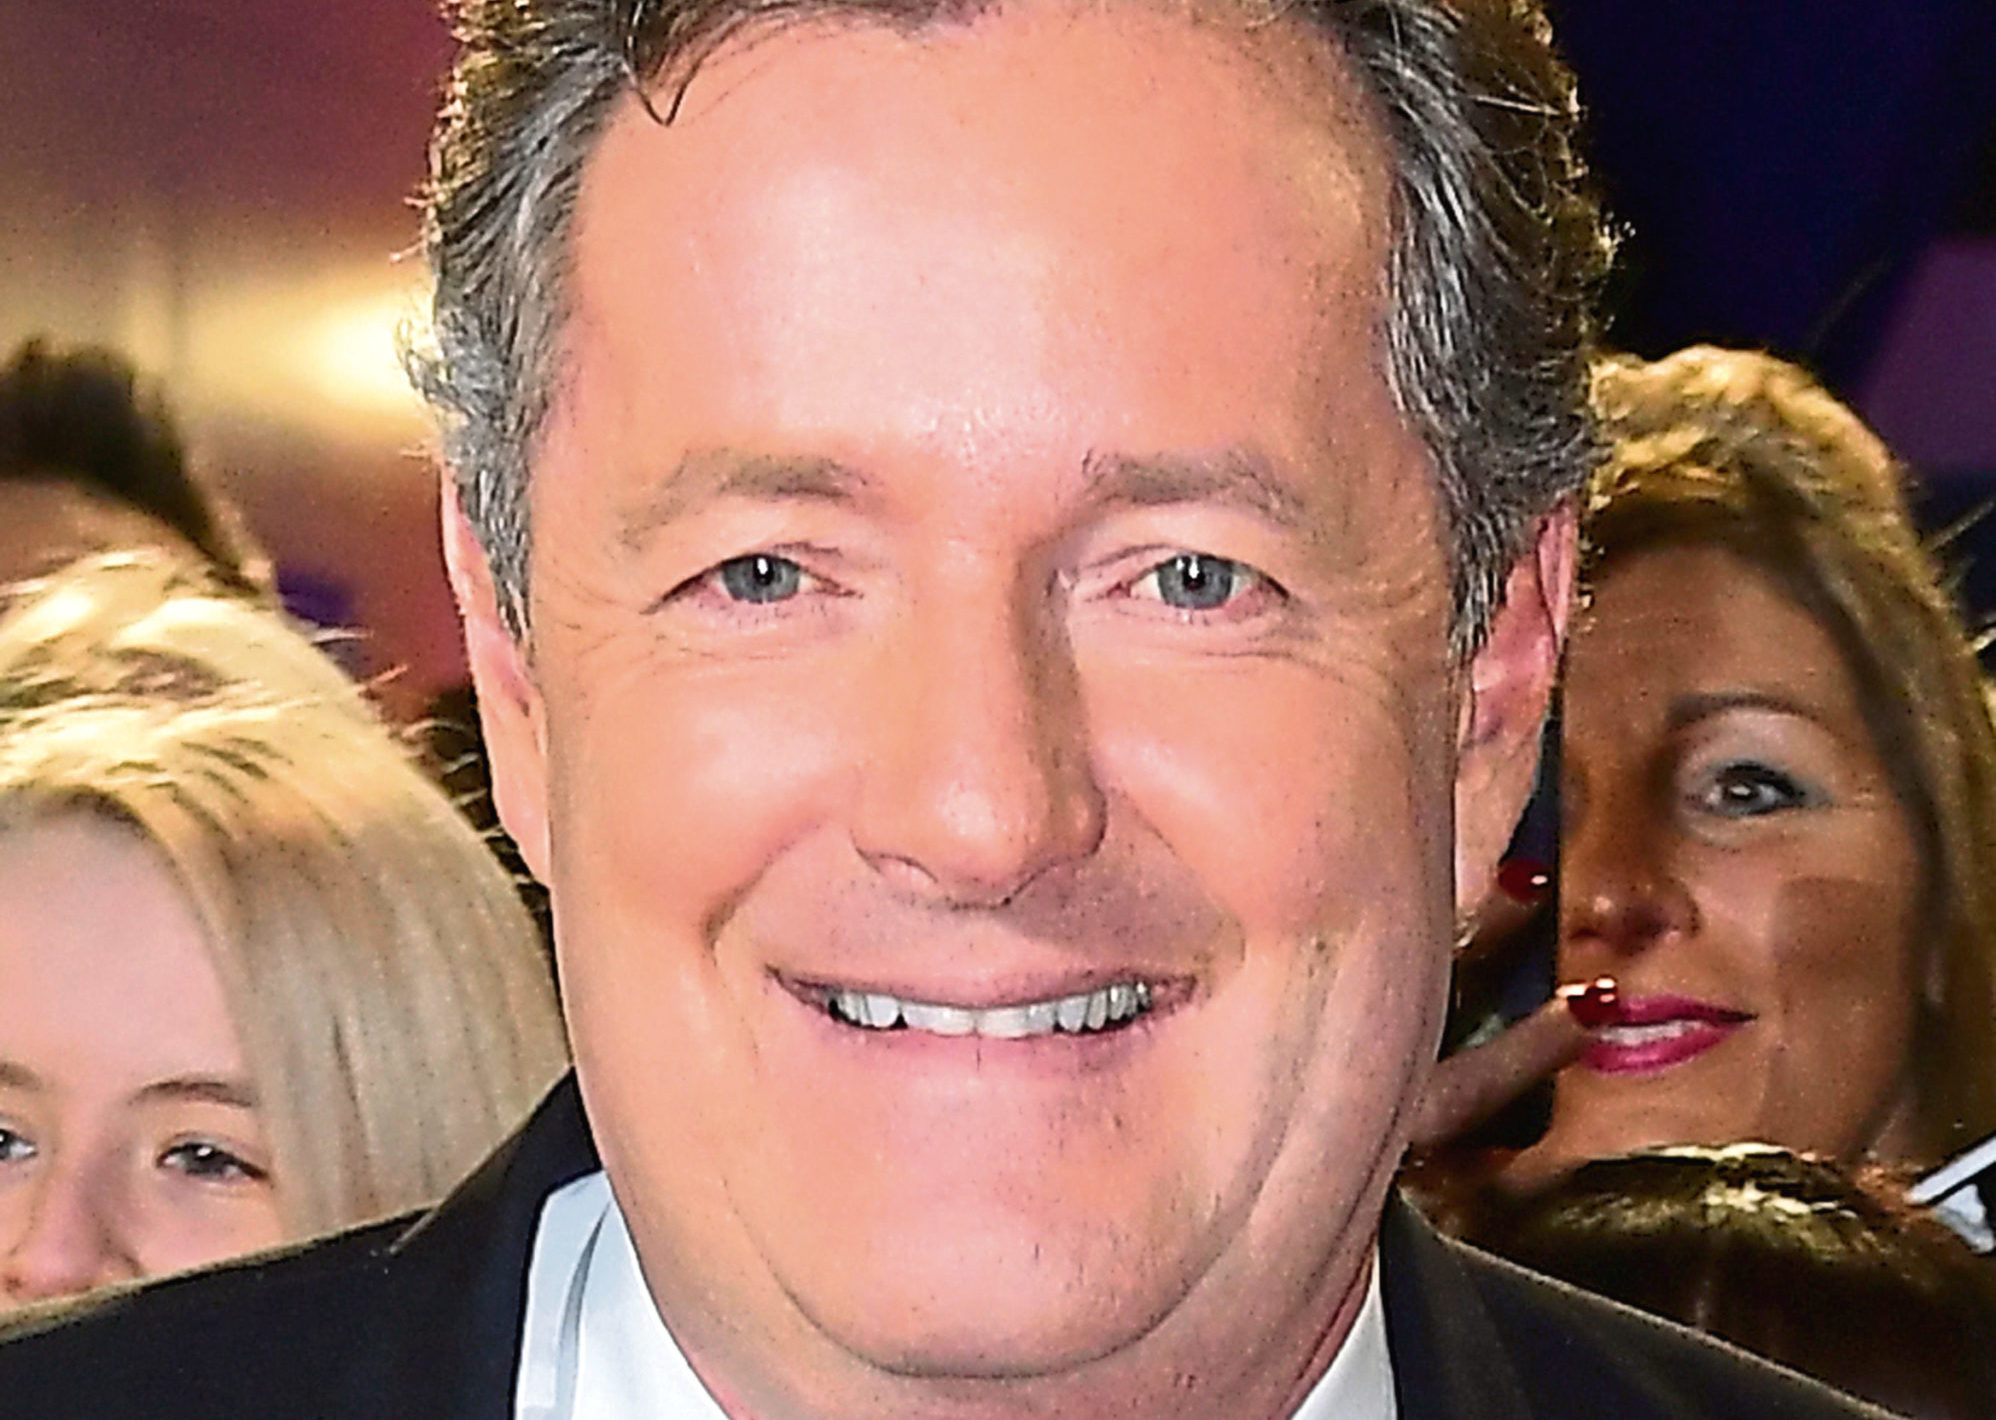 Piers Morgan.